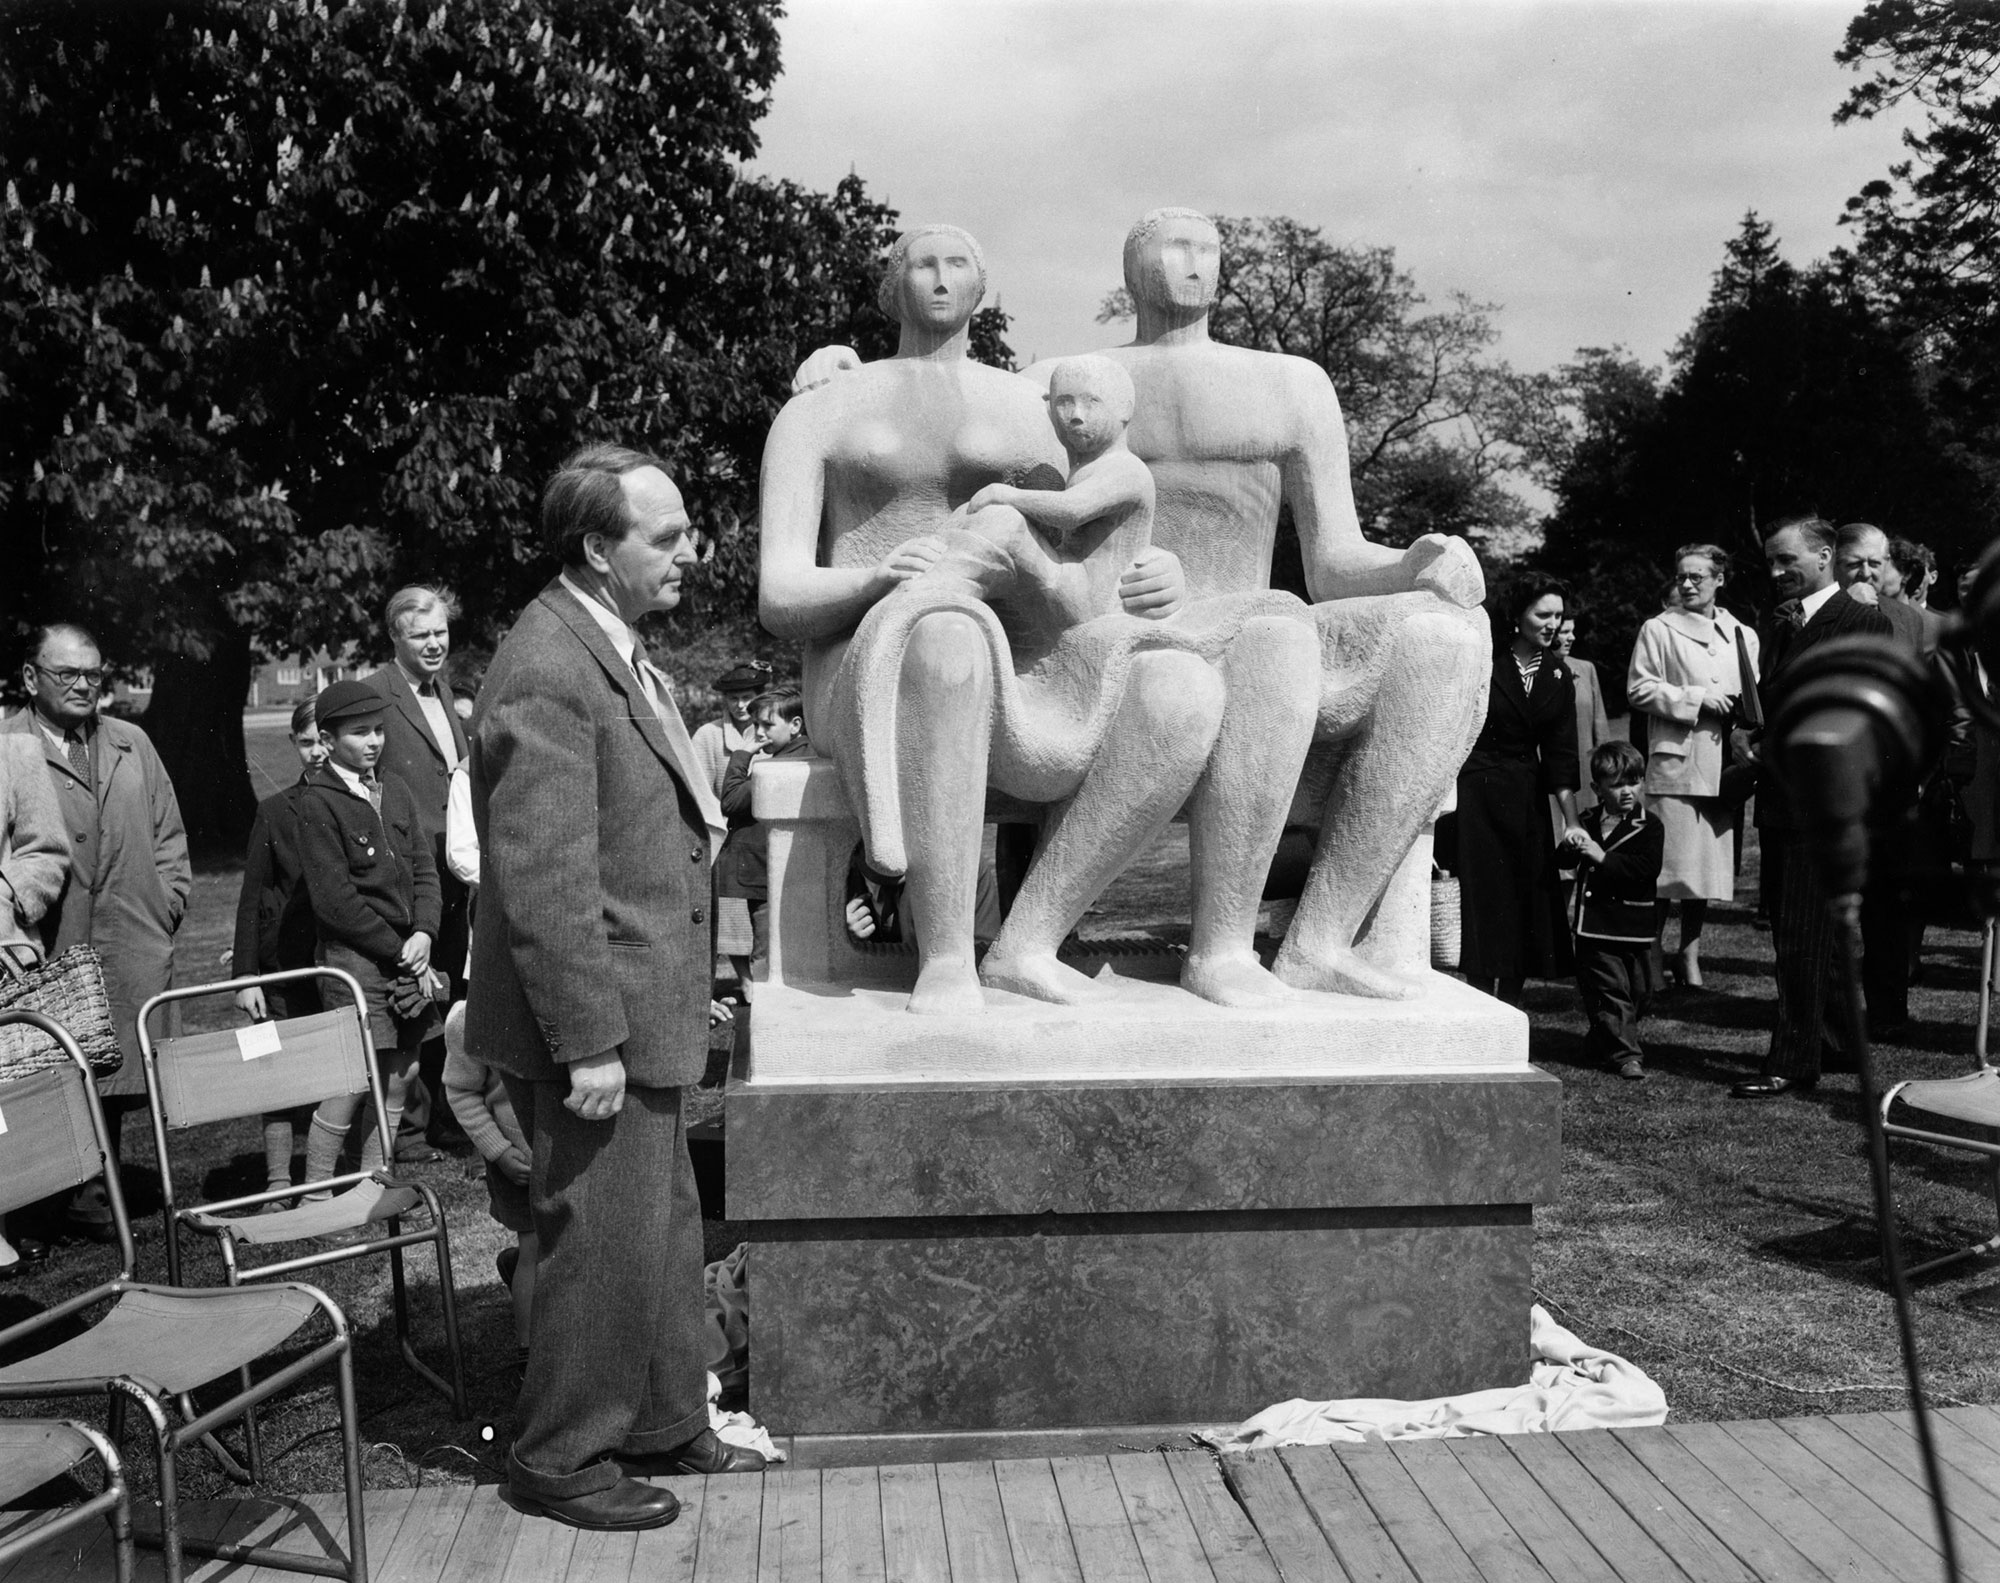 May 1956: Henry Moore in Harlow New Town for the unveiling of Harlow Family Group 1954-55